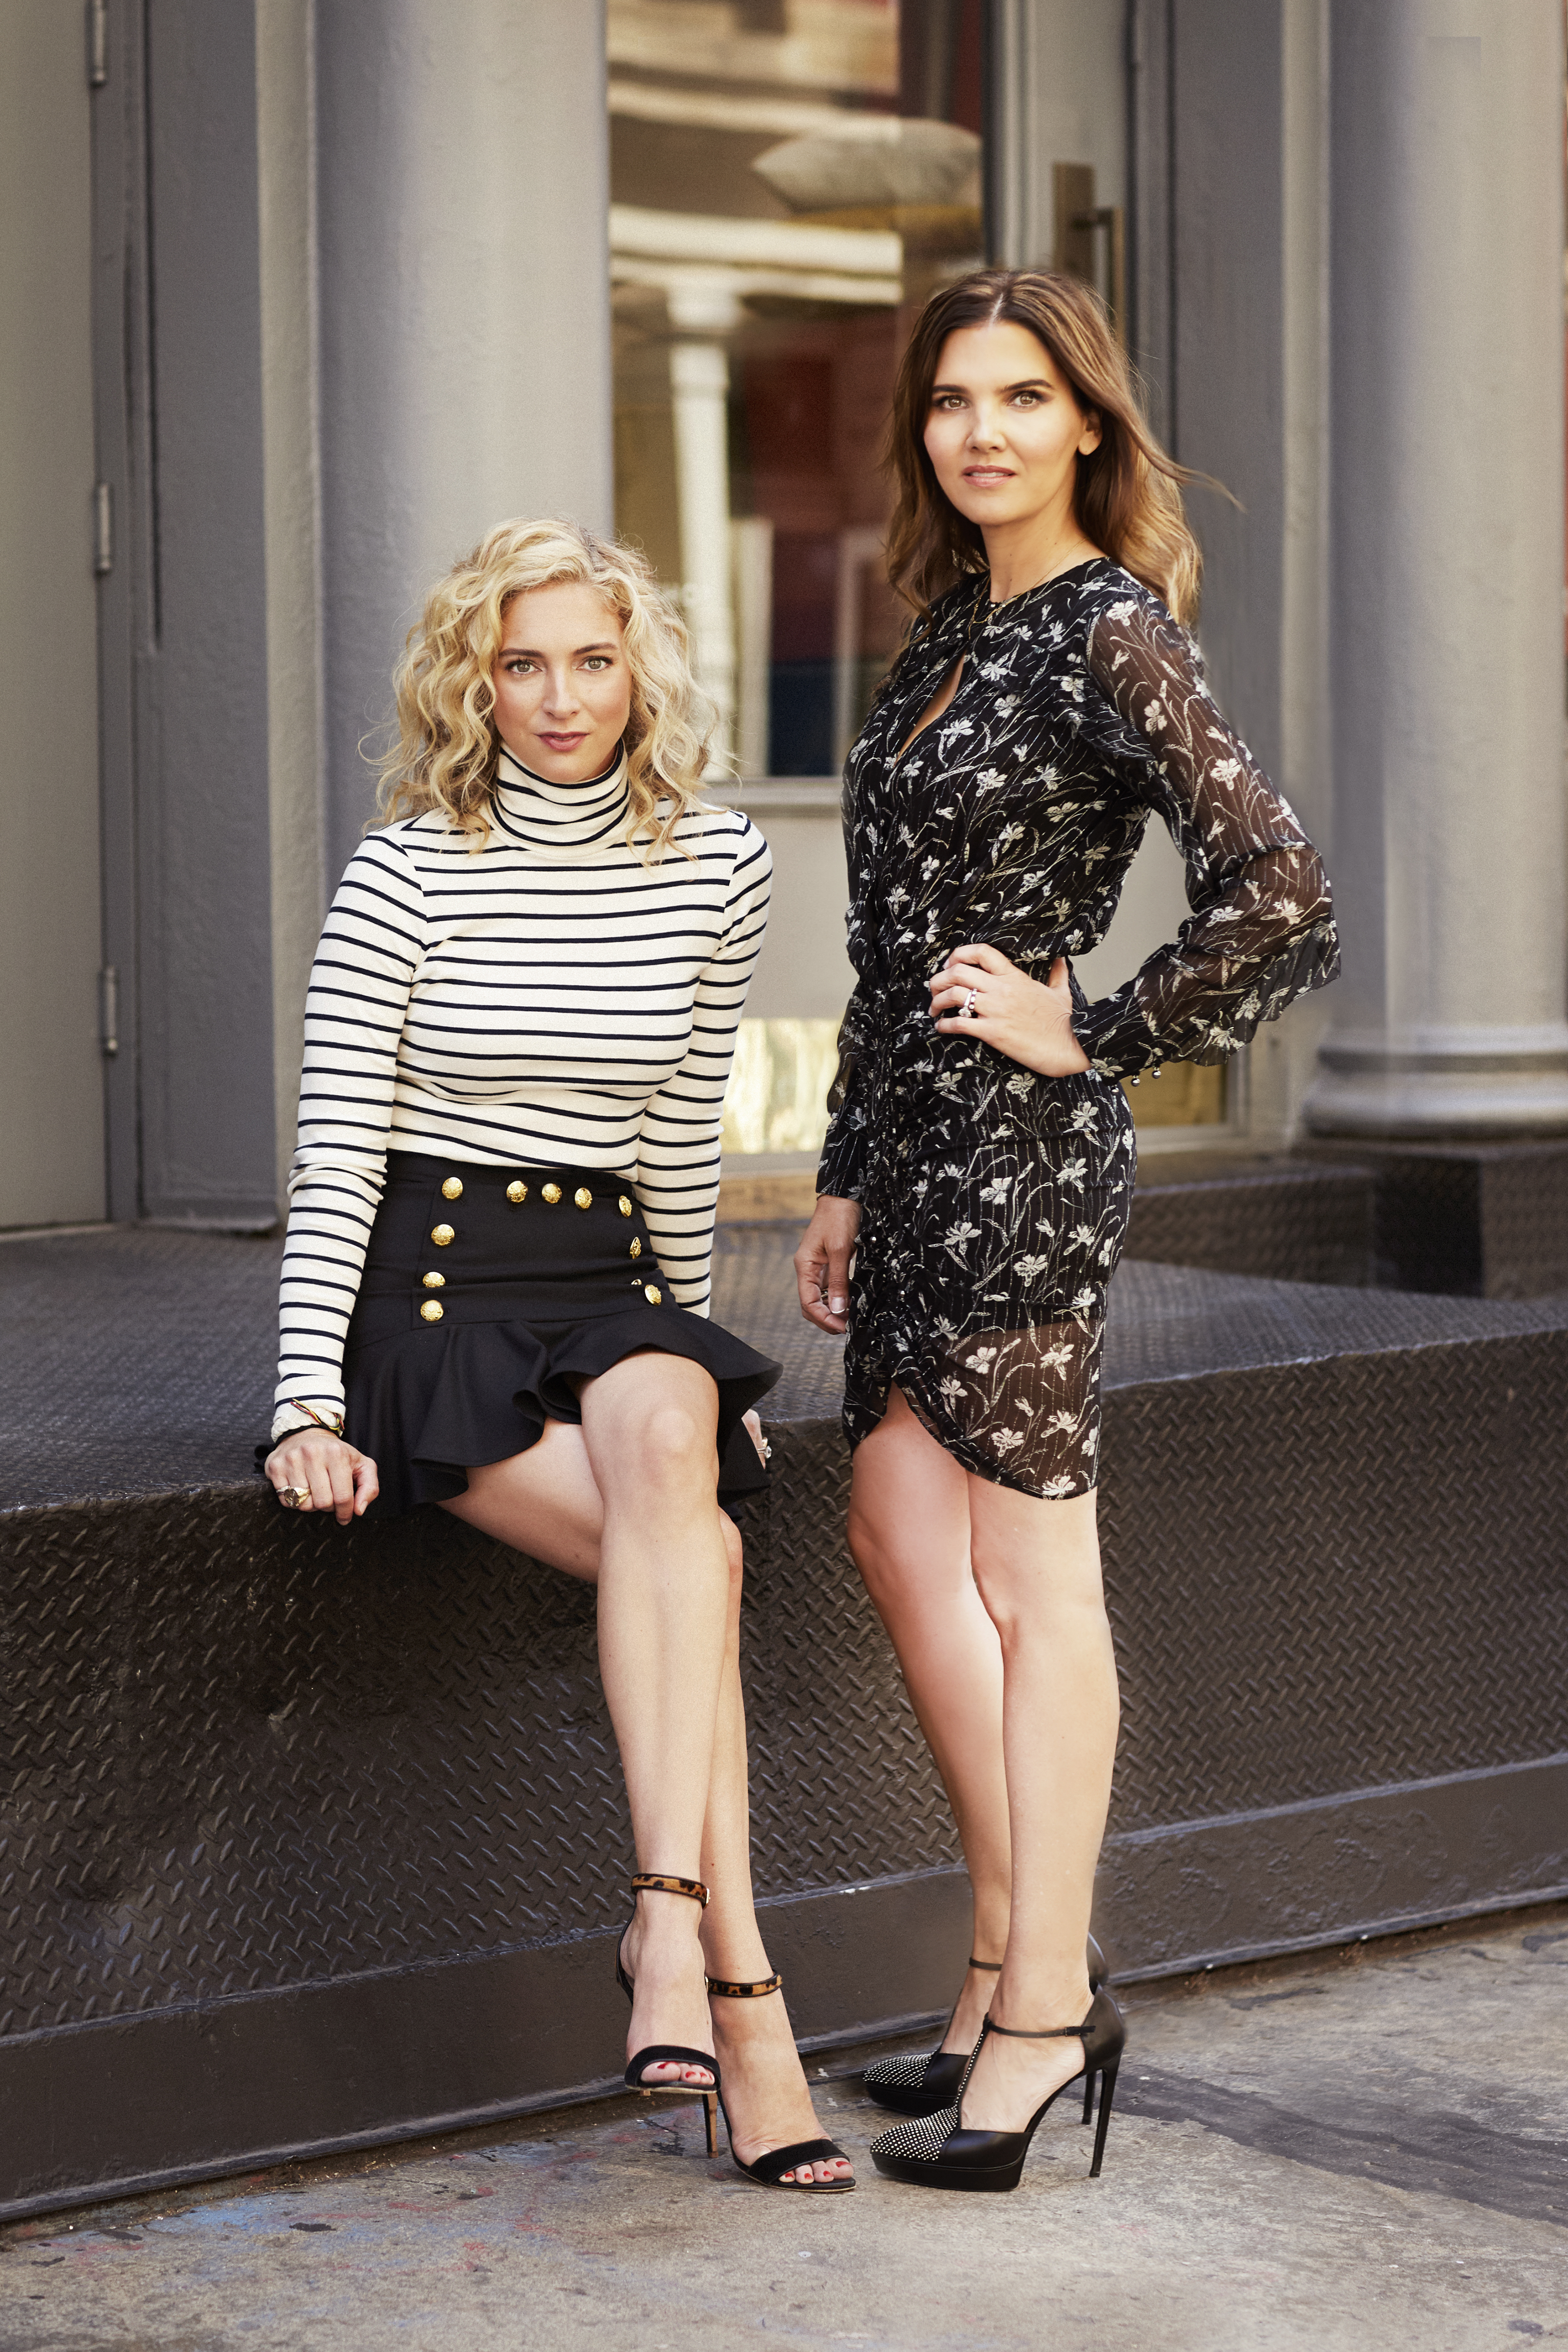 Sisters-in-law Veronica Miele Beard and Veronica Swanson Beard created the brand in 2010 in the heart of New York City.